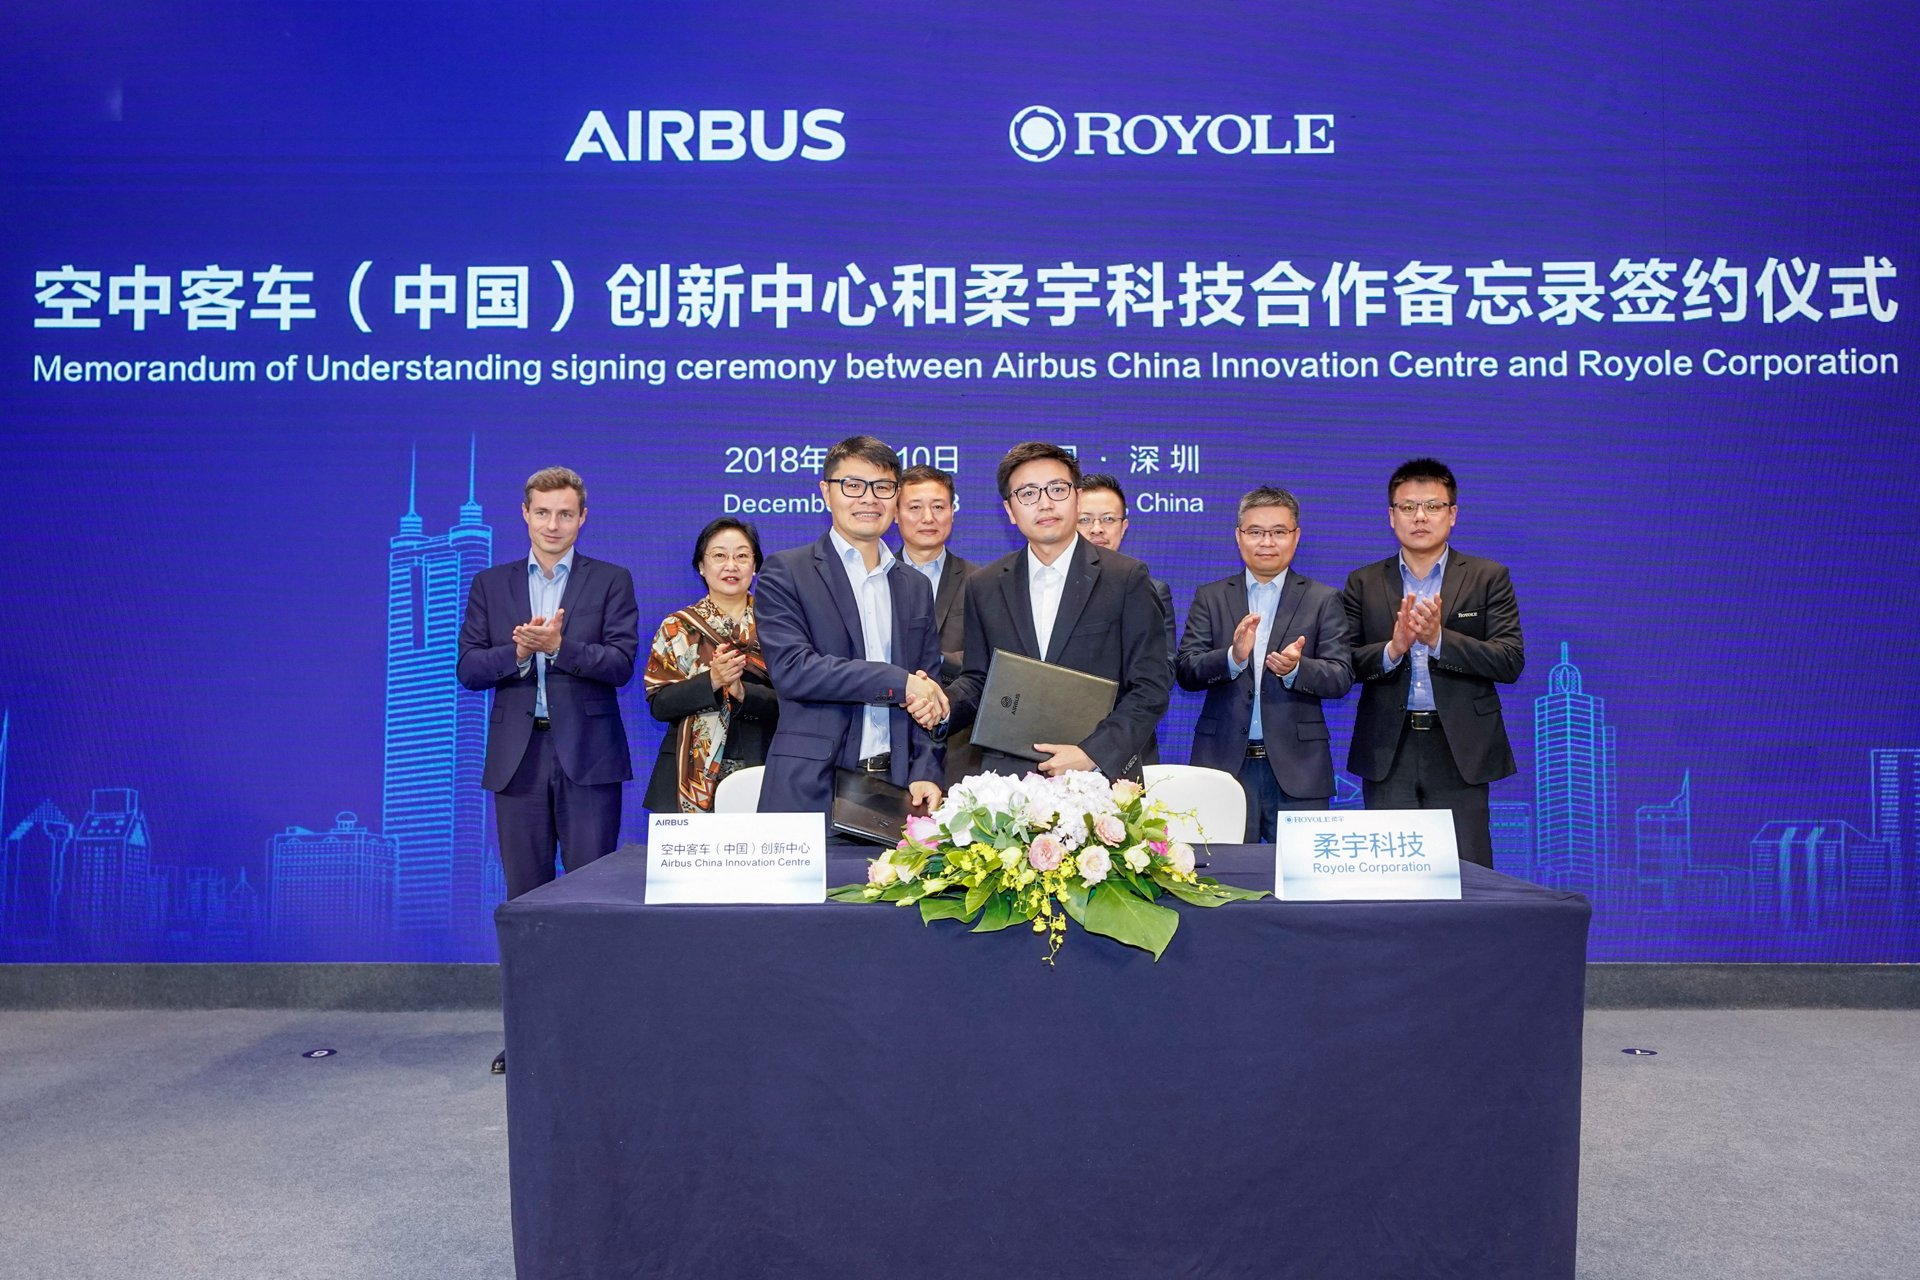 Airbus and Royole Technology enter partnership on flexible electronic technologies for aircraft cabins